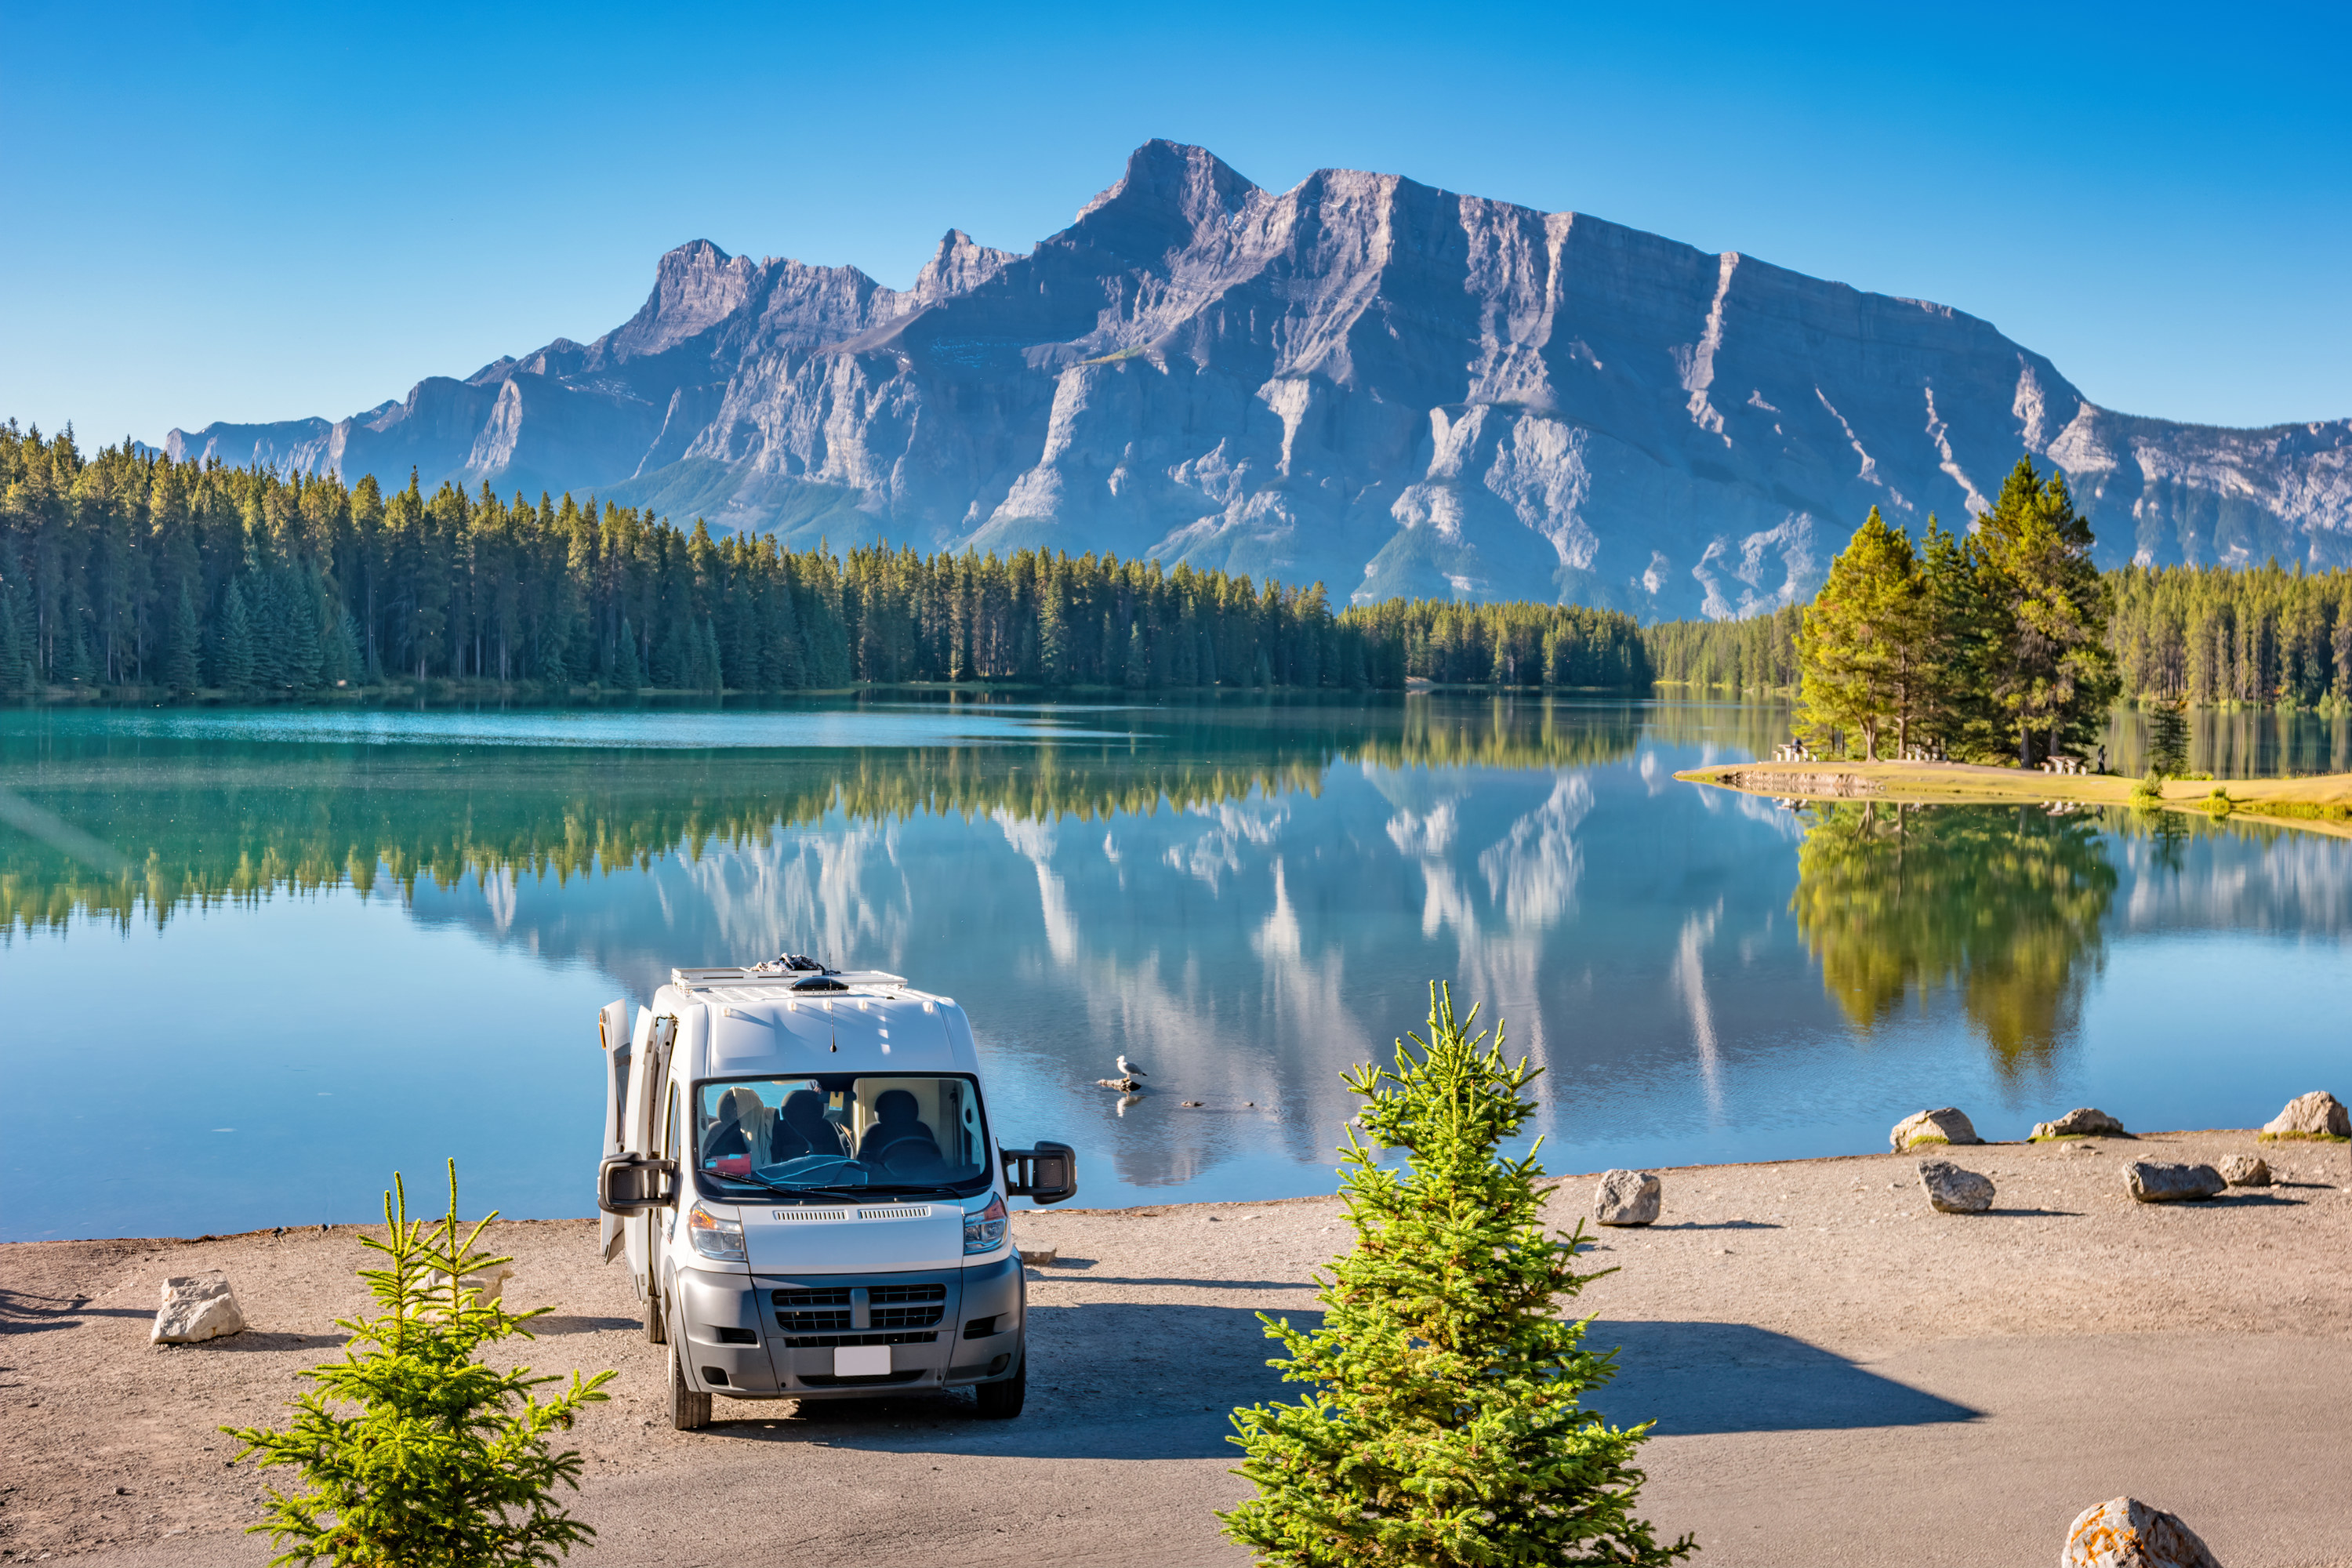 Campervan parked on a lake with tall trees and mountain behind it